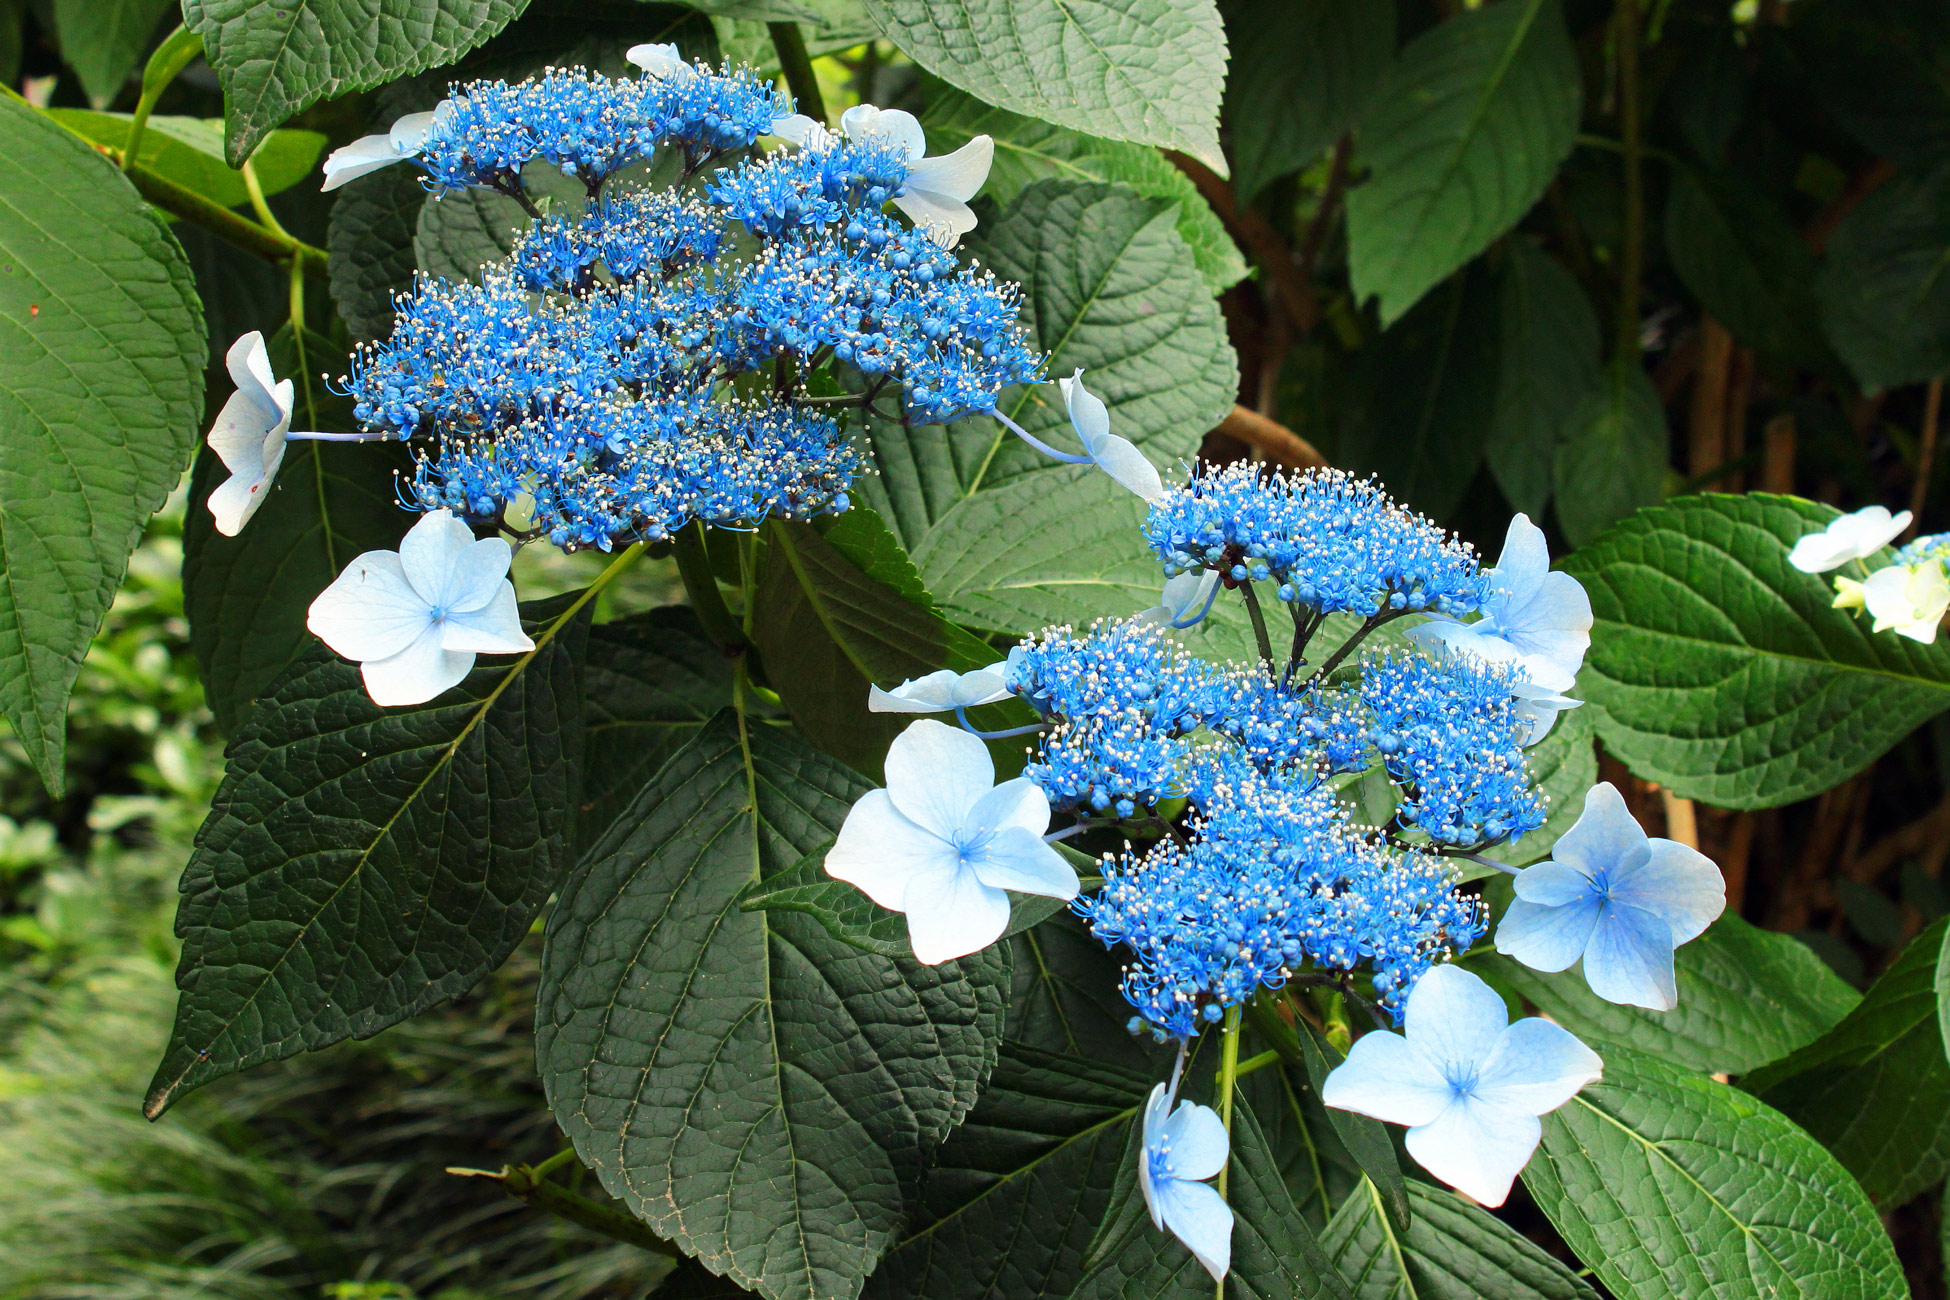 close-up Lacecap Hydrangeas with blue and white blooms